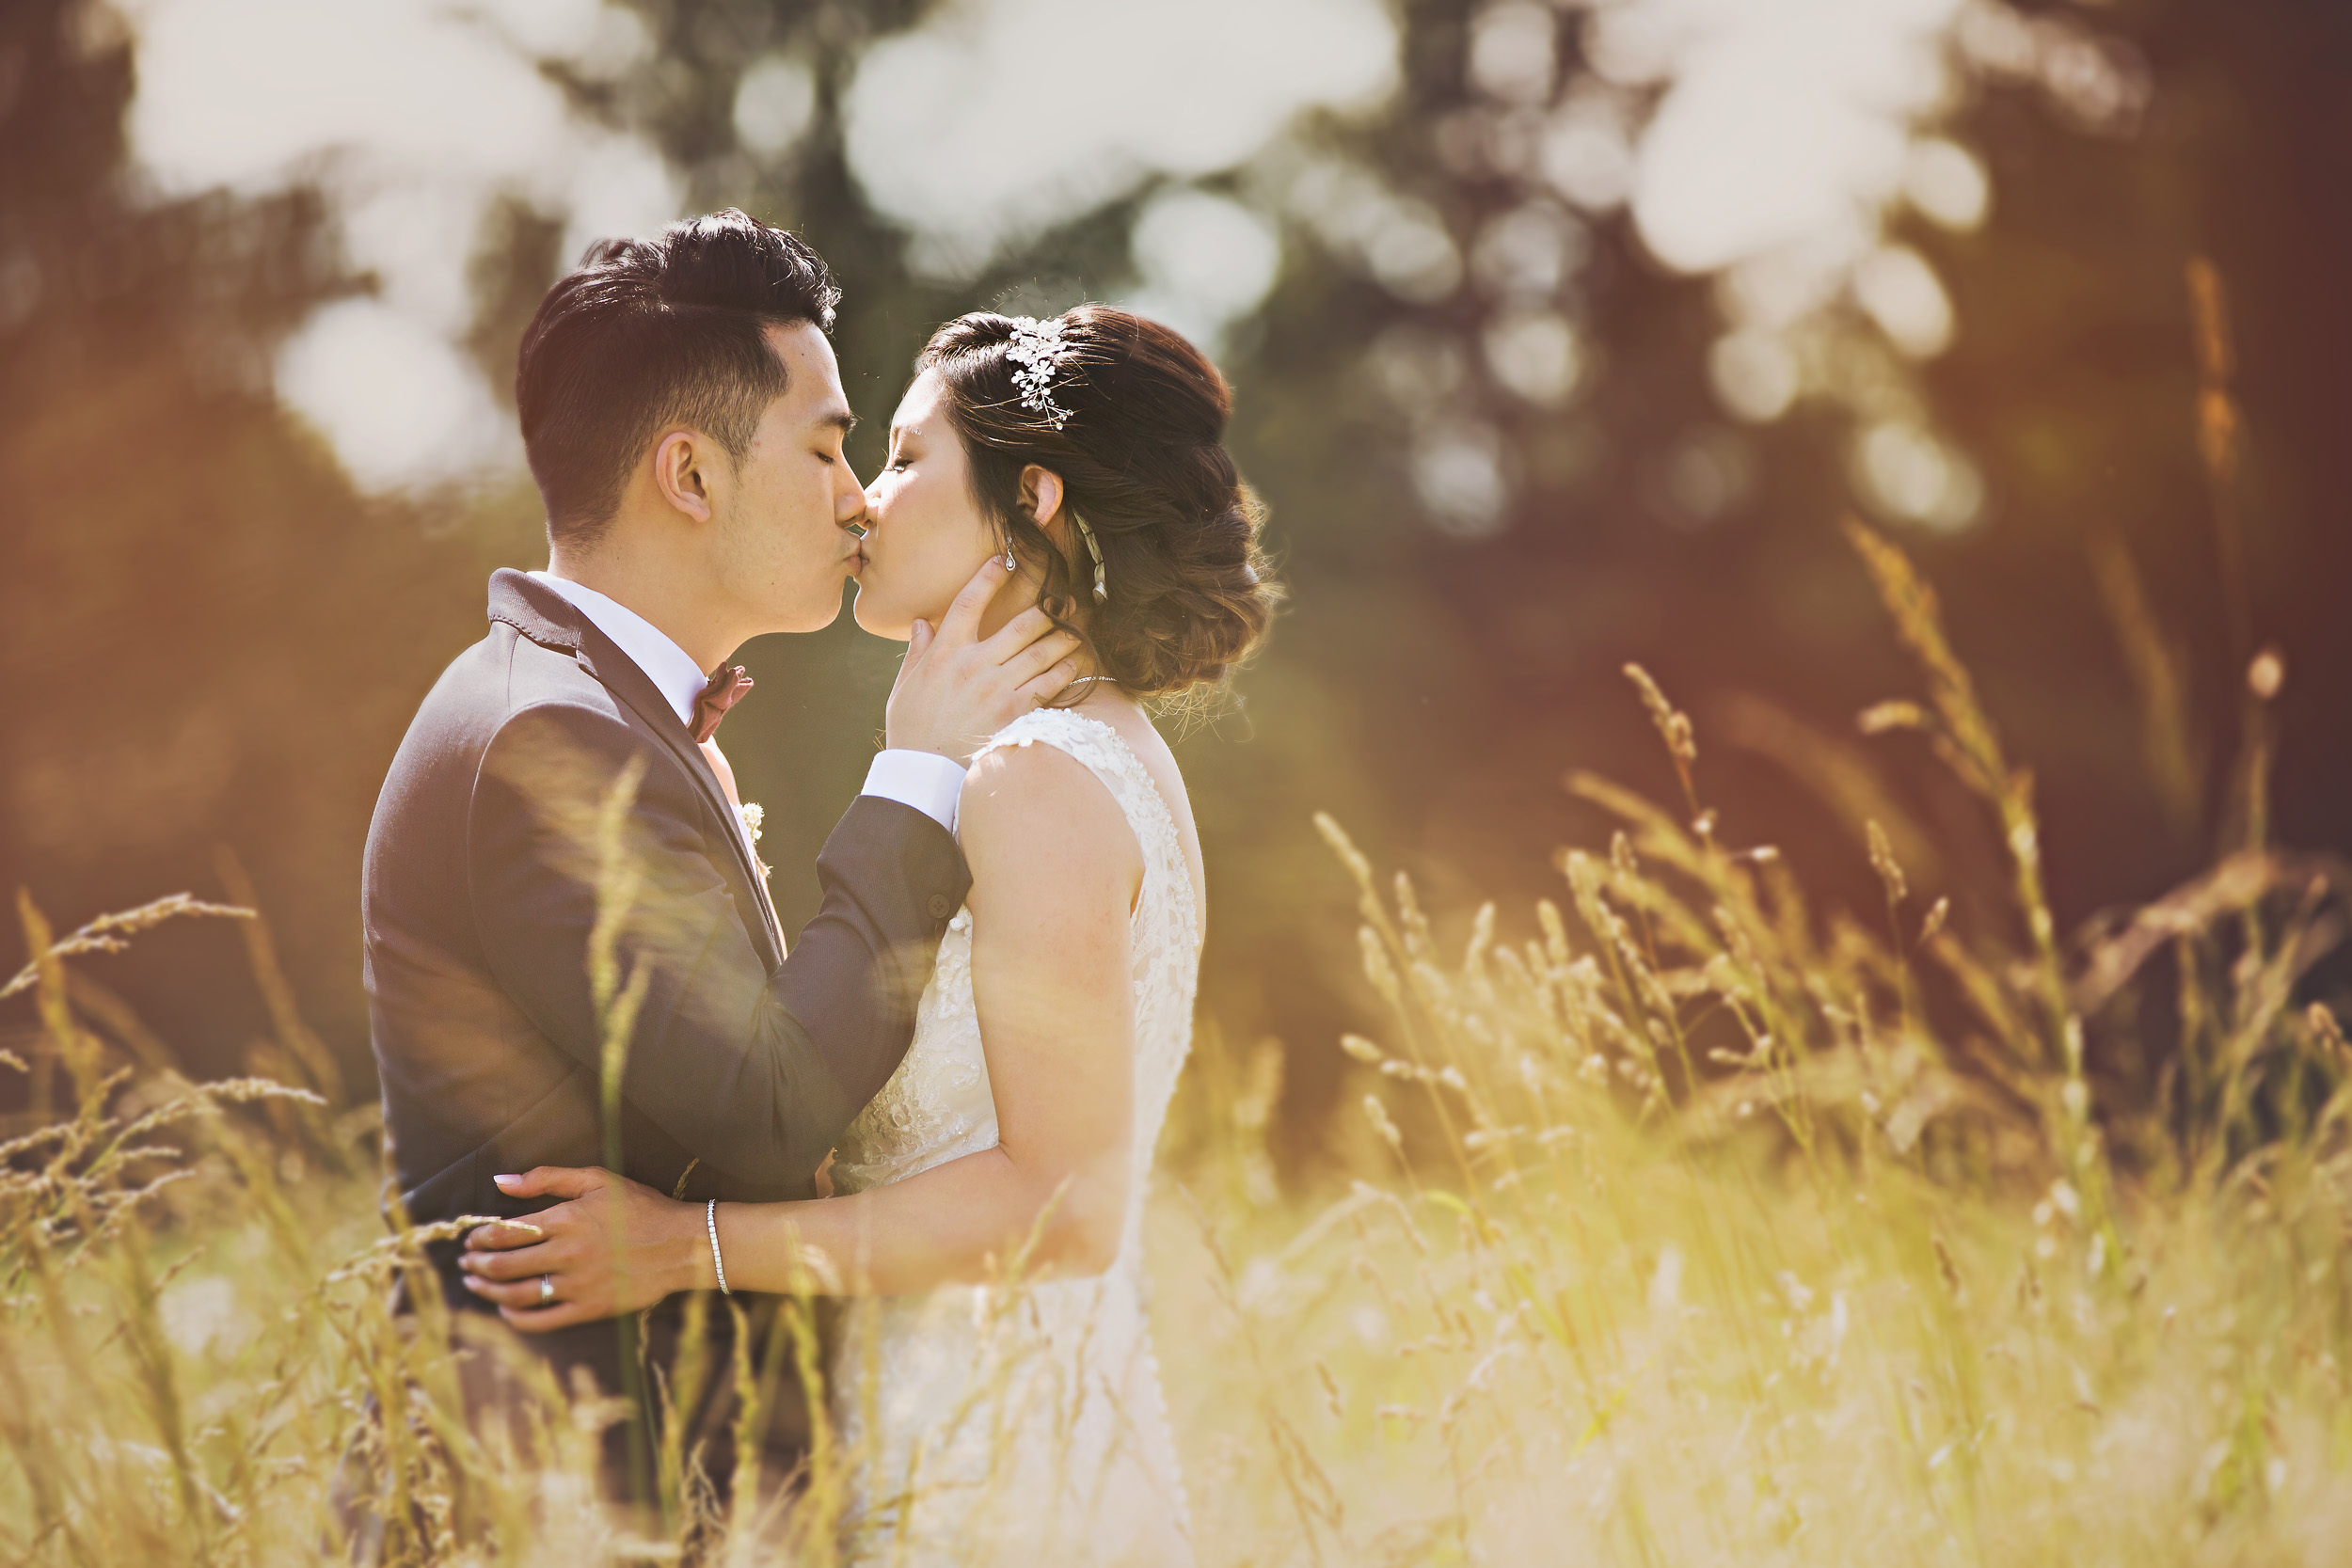 So dreamy...the light, the field, the couple!